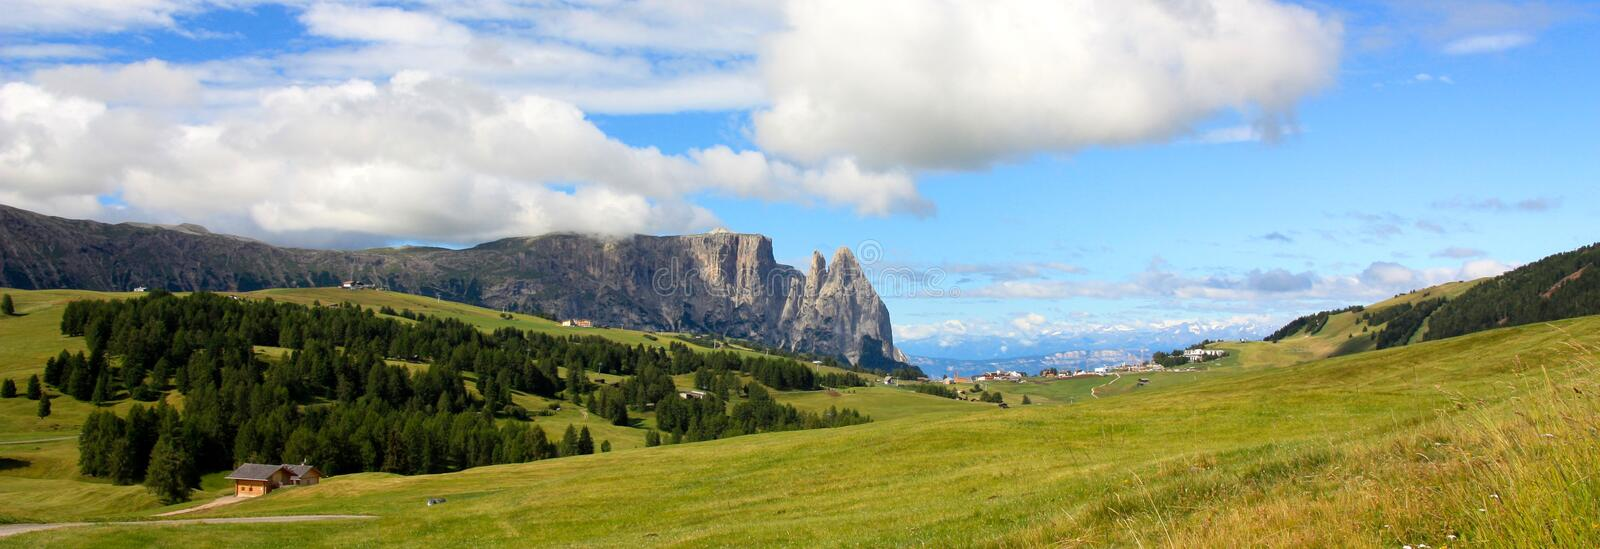 View of the Sciliar, Dolomites, Italy. A view of the Sciliar mountain near Siusi, Dolomites, Italy stock photo